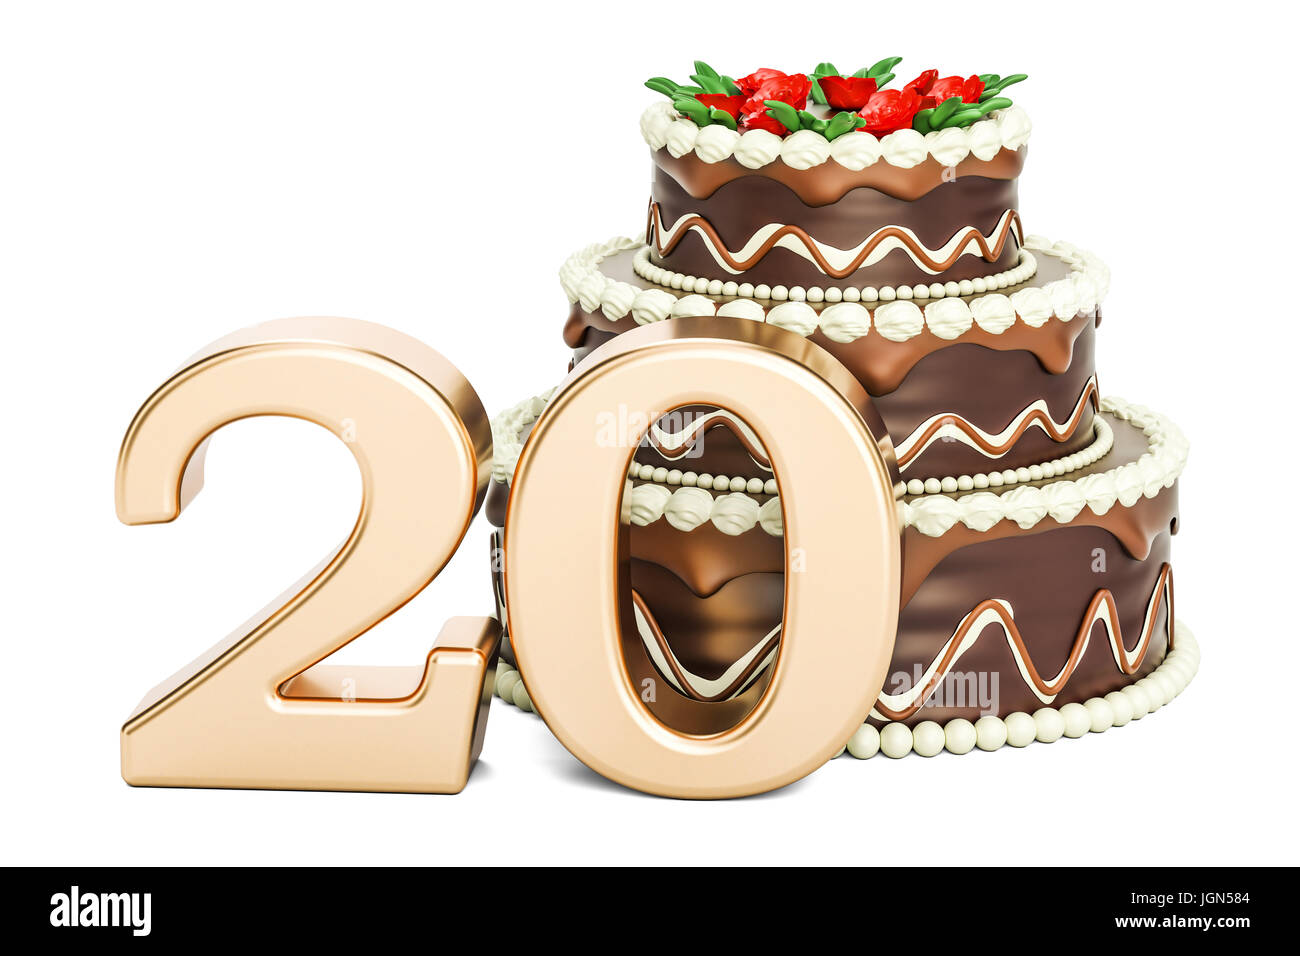 20th Birthday Cake Cut Out Stock Images Pictures Alamy